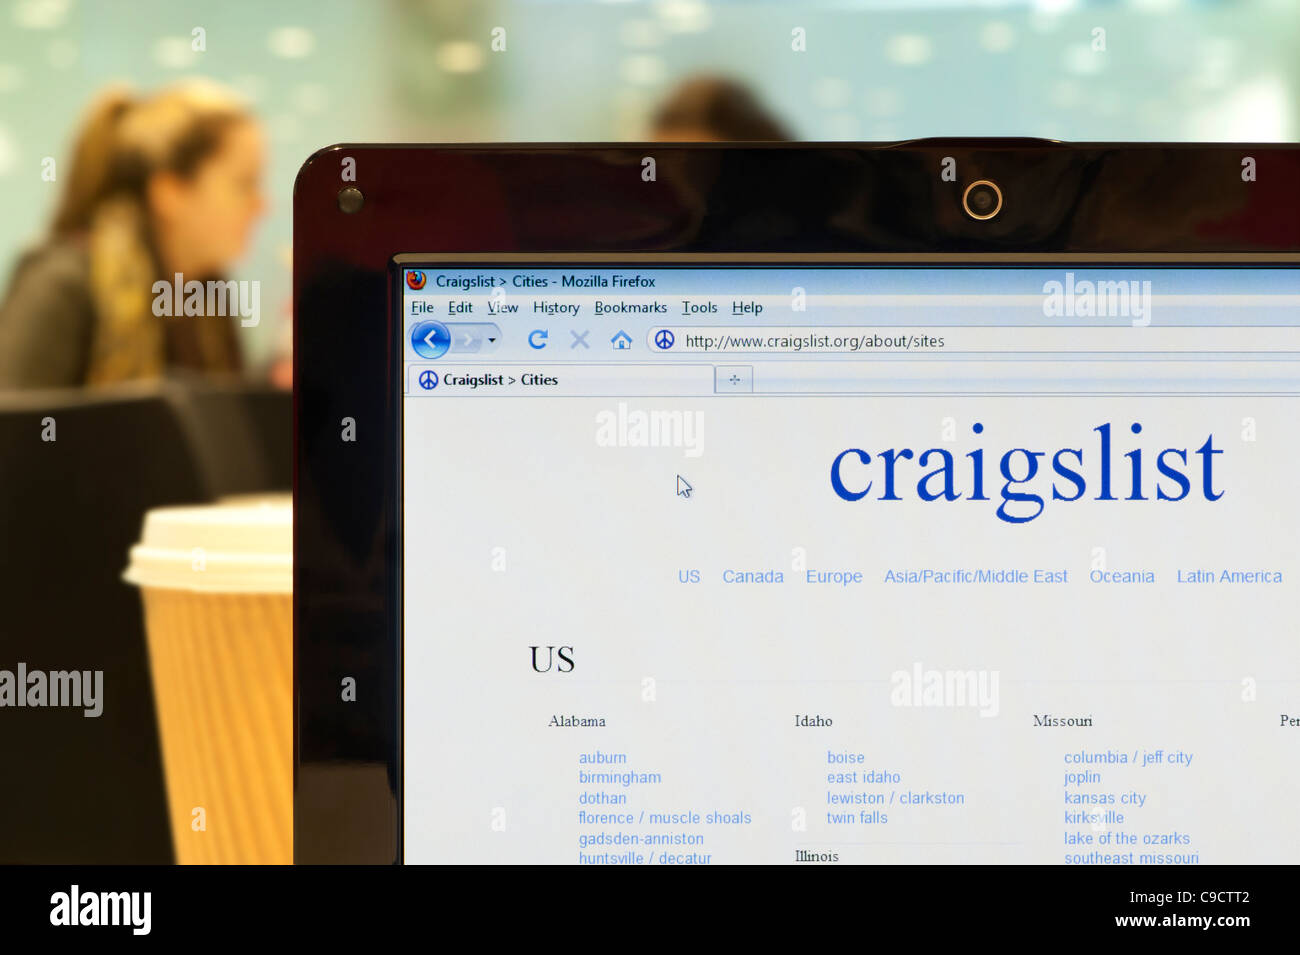 Craigslist Screenshot Stock Photos & Craigslist Screenshot Stock